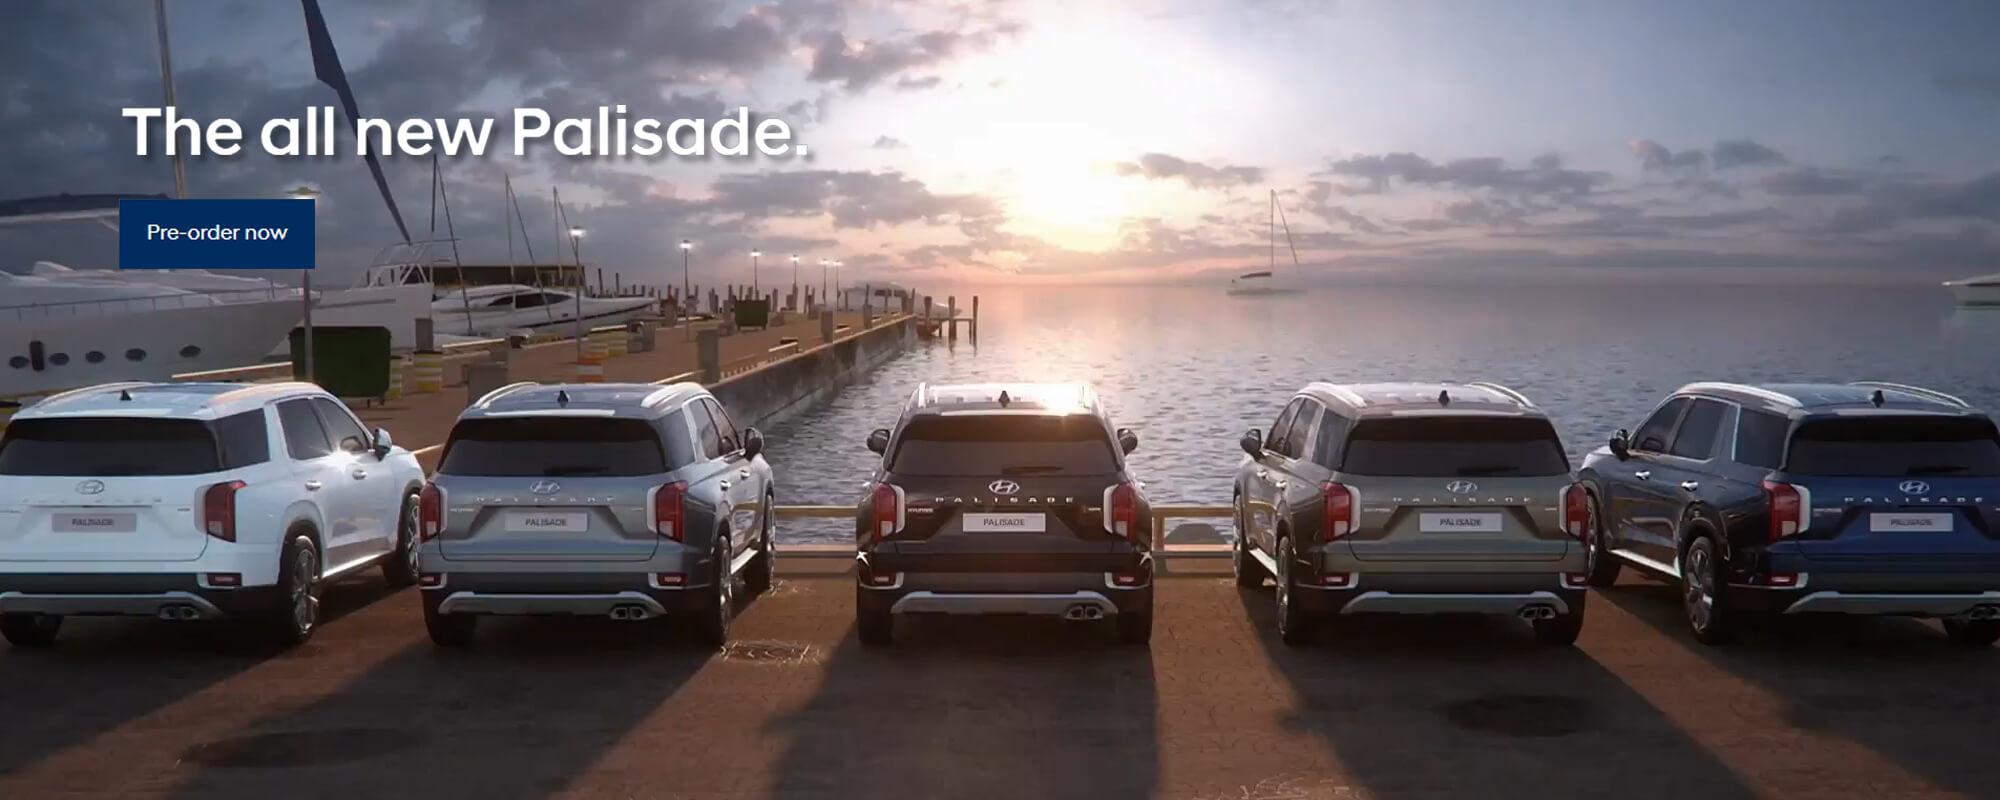 The all new Palisade. Pre-order now.